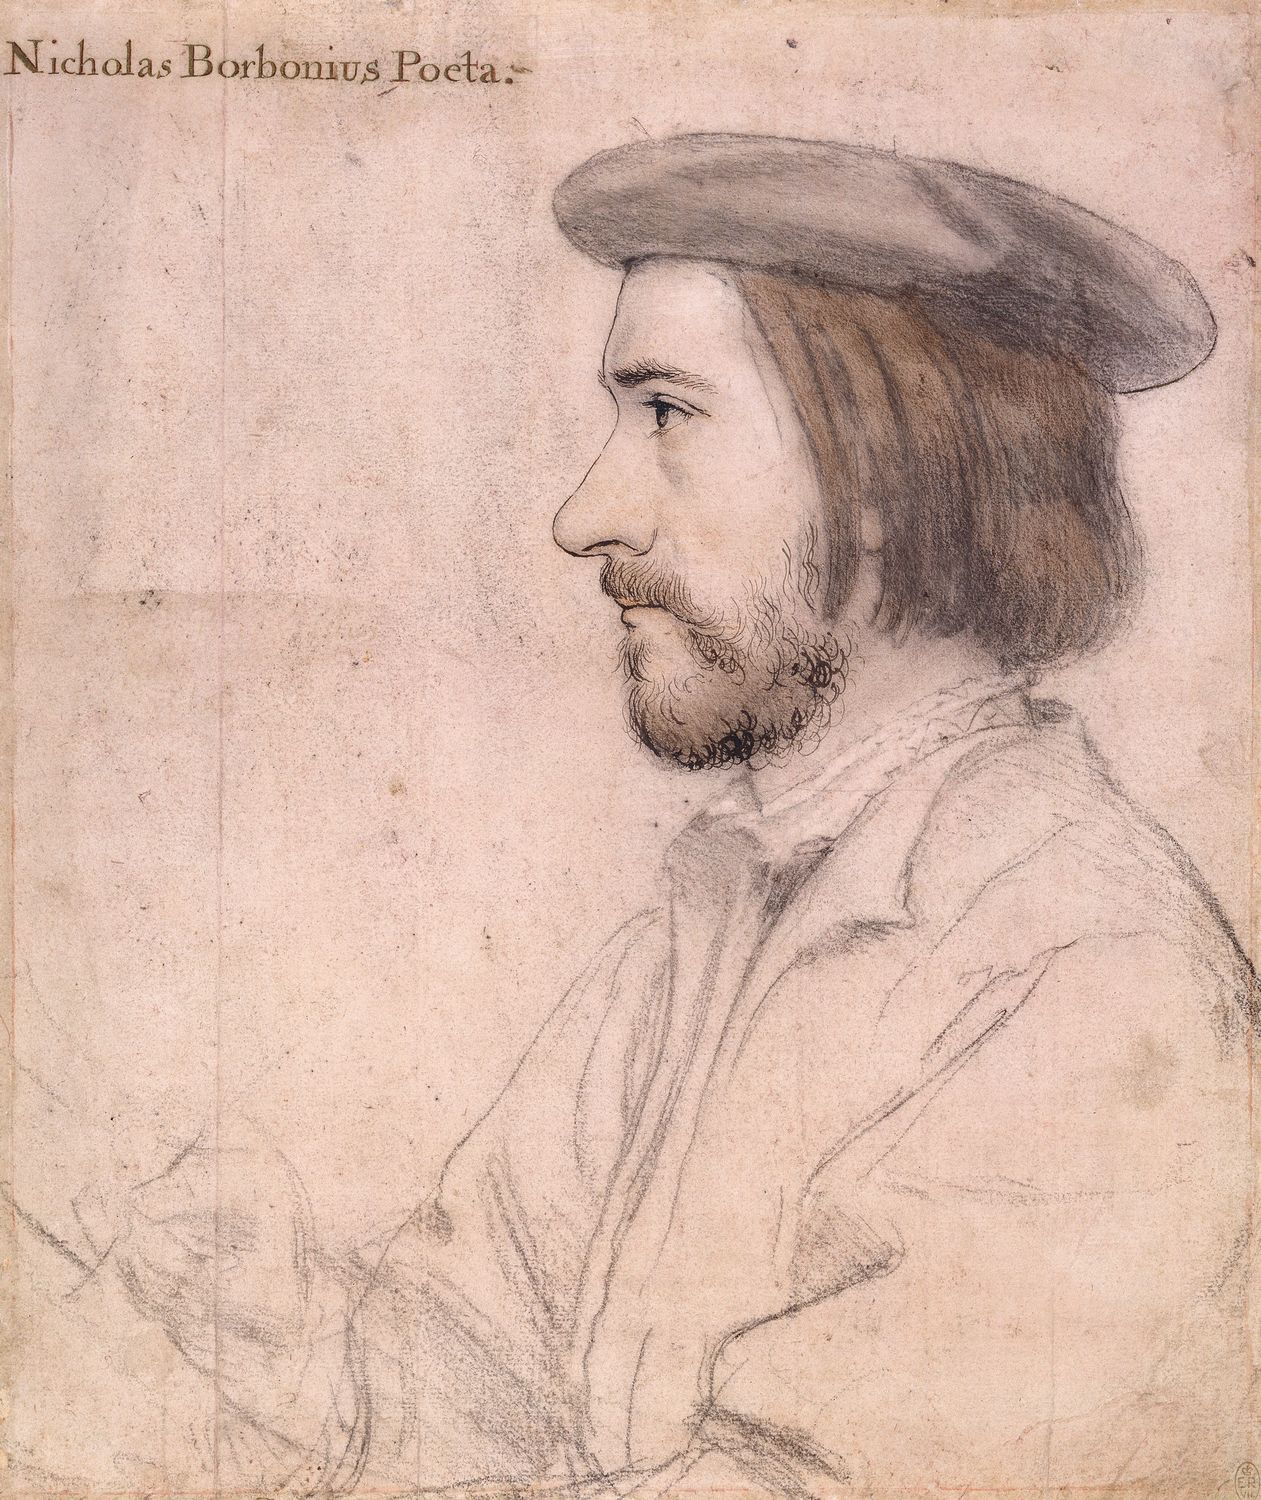 Hans Holbein the Younger, Nicholas Bourbon (1535, Royal Collection Trust, London)